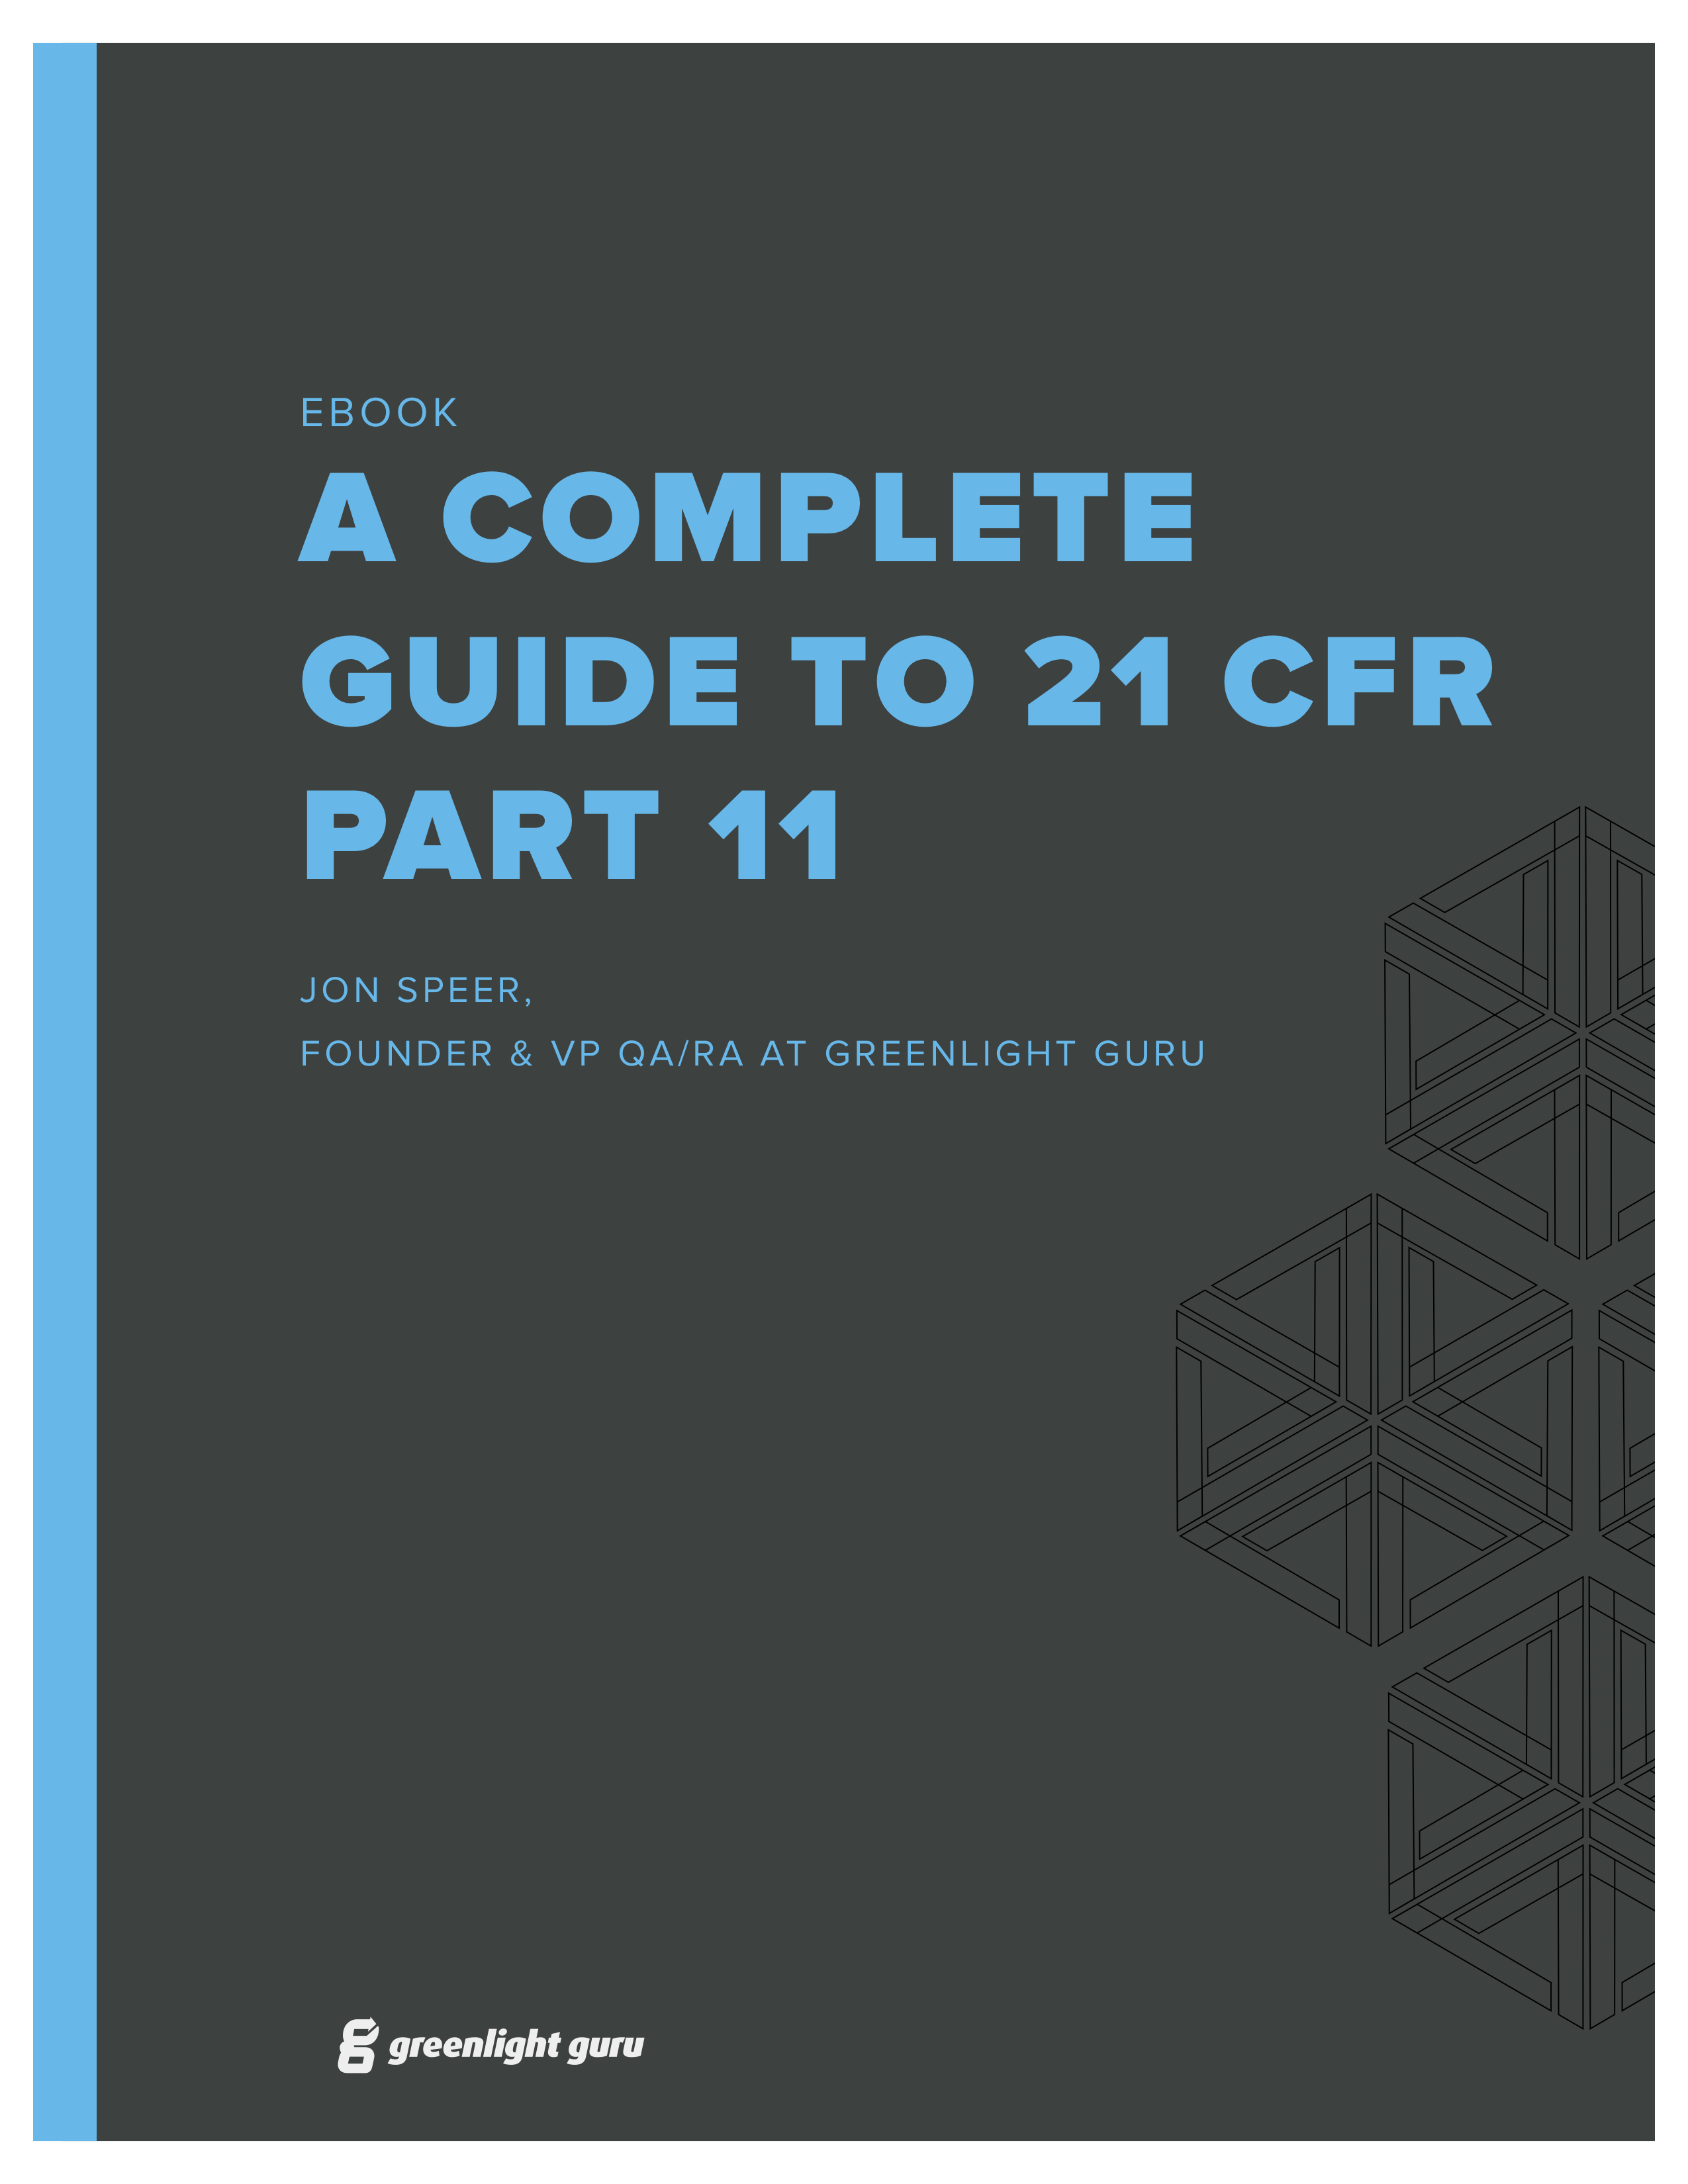 21 CFR Part 11: A Complete Guide